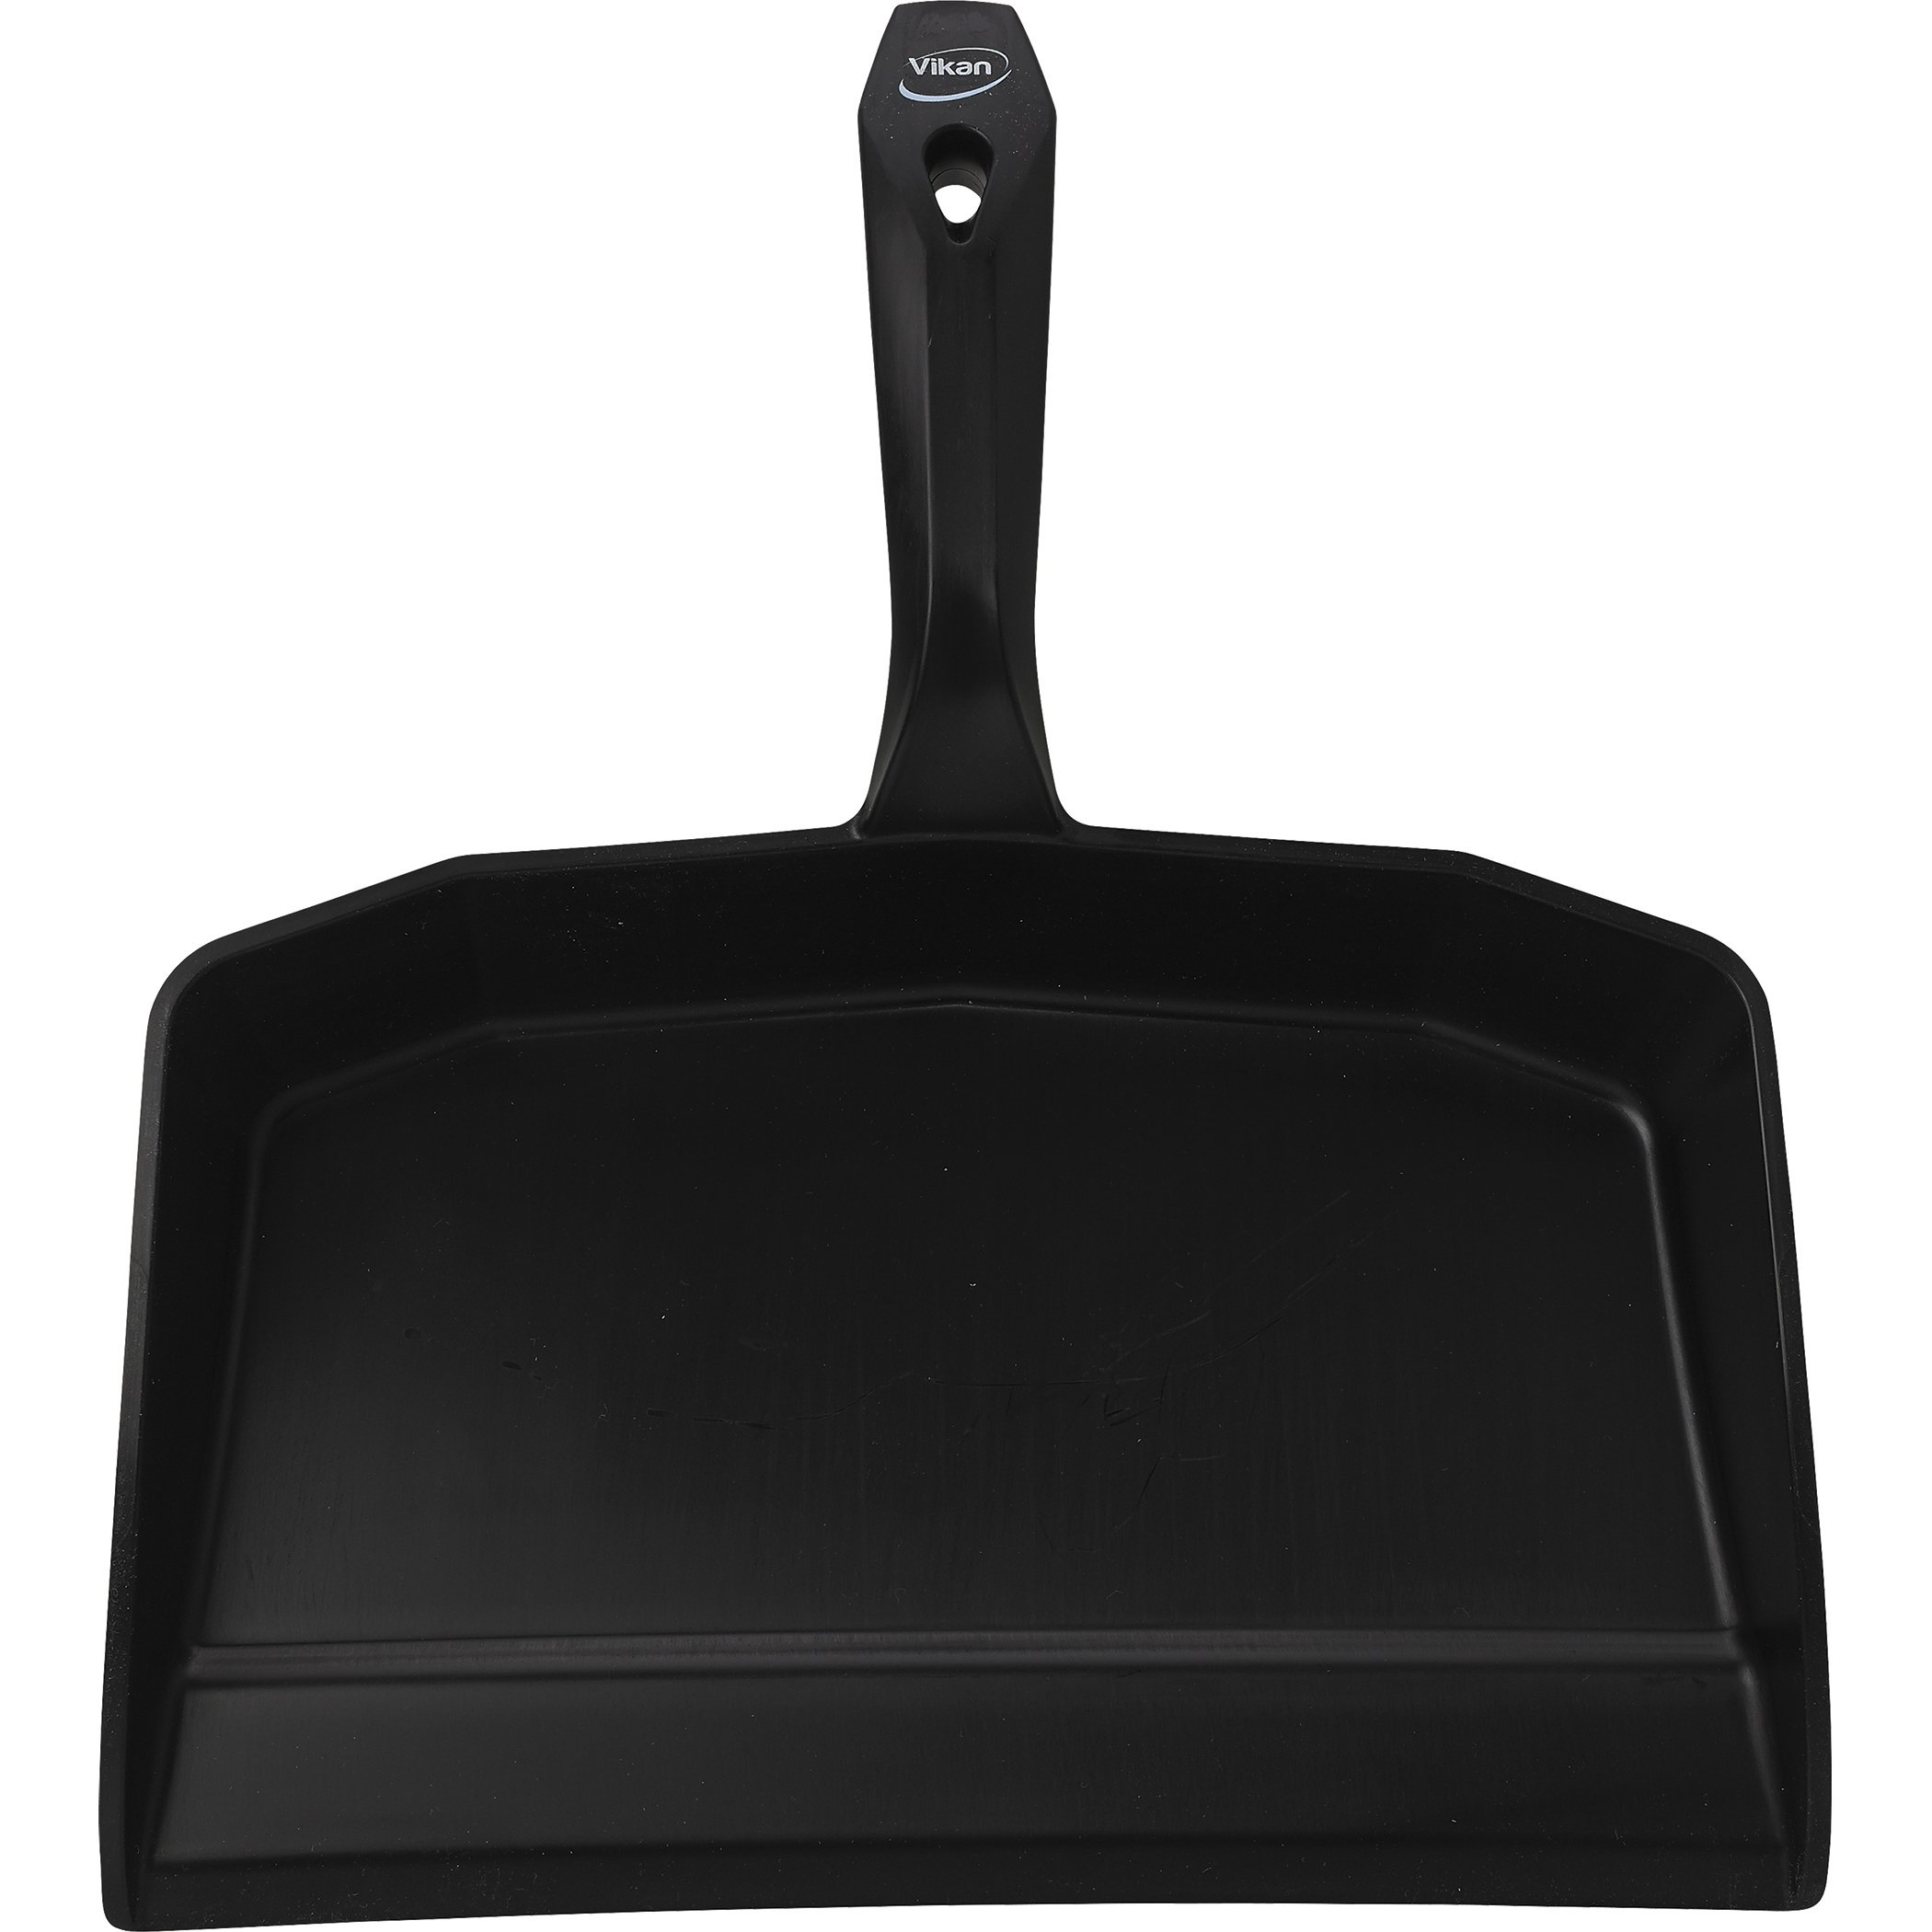 Vikan 56609 Dust Pan, Polypropylene, 13-25/64'', Black